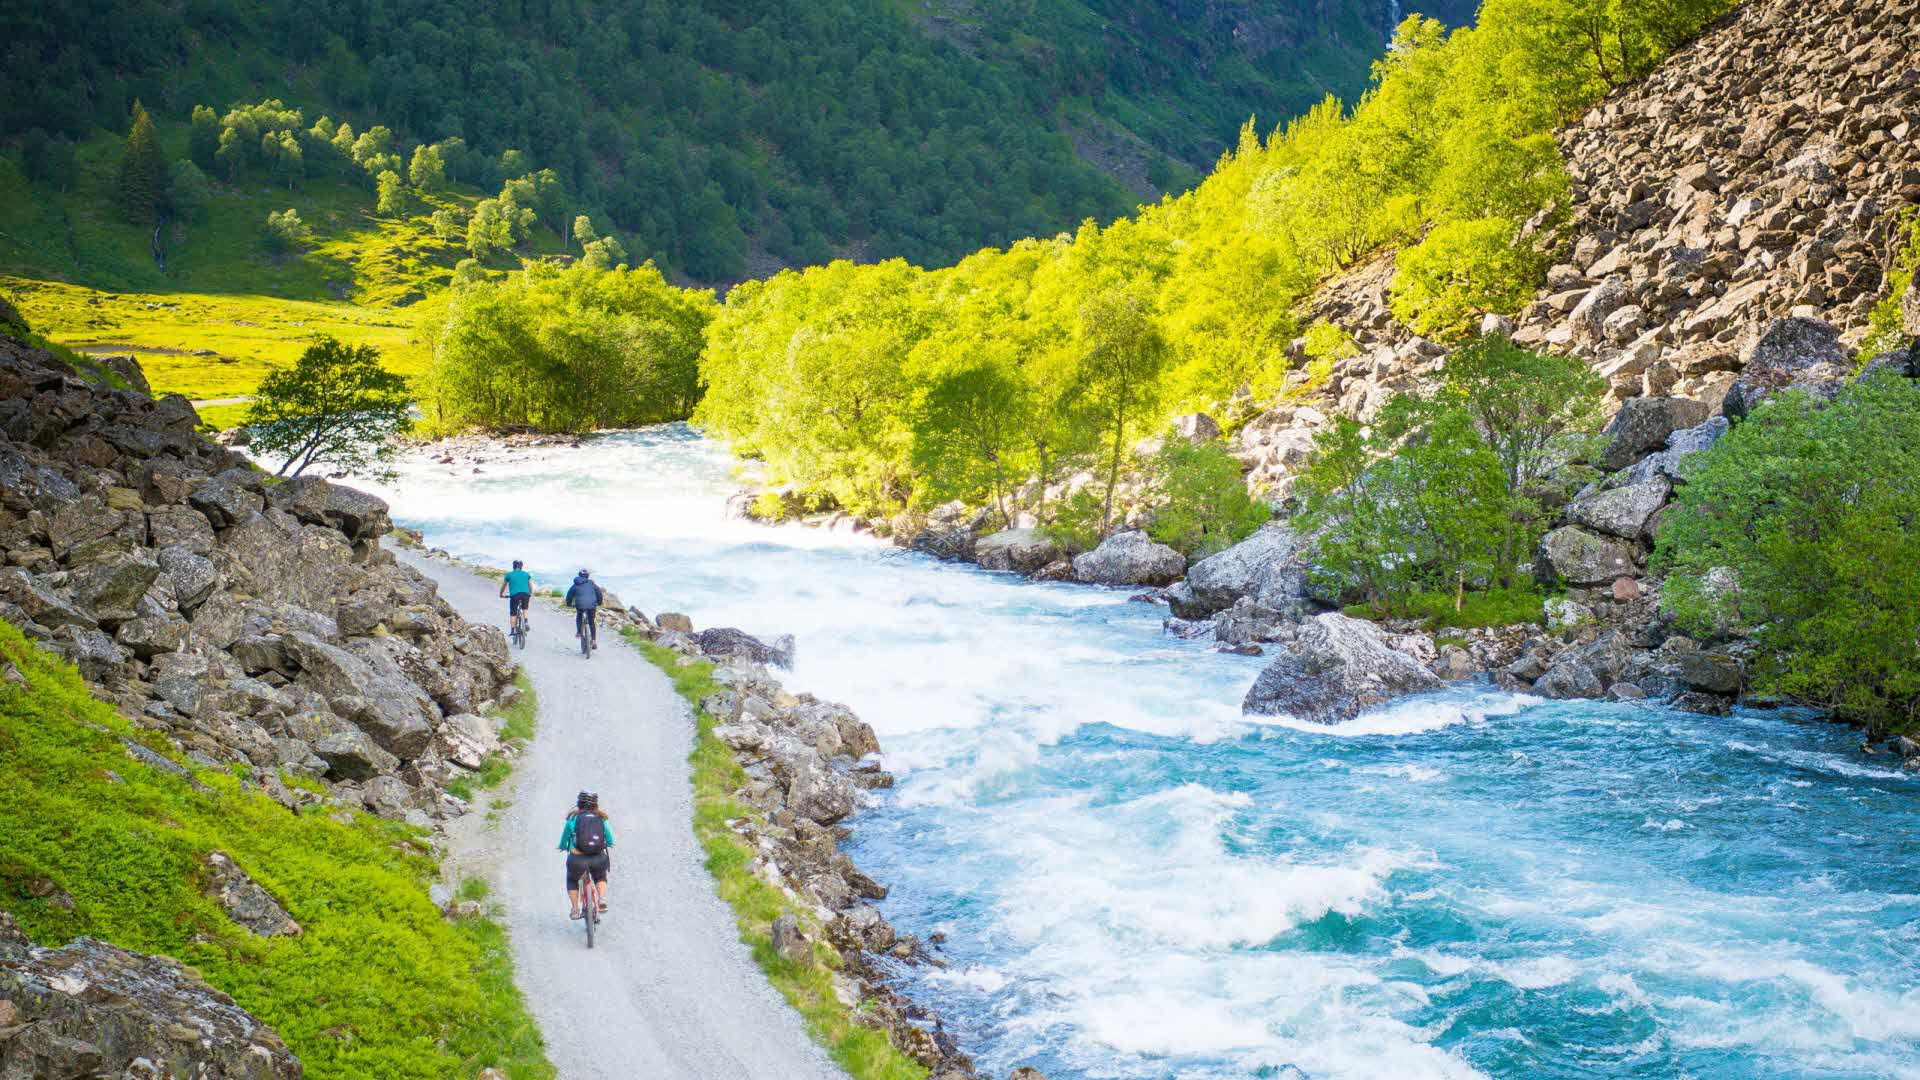 Two people cycling along the river down Flåmsdalen, with blue skies and green grass